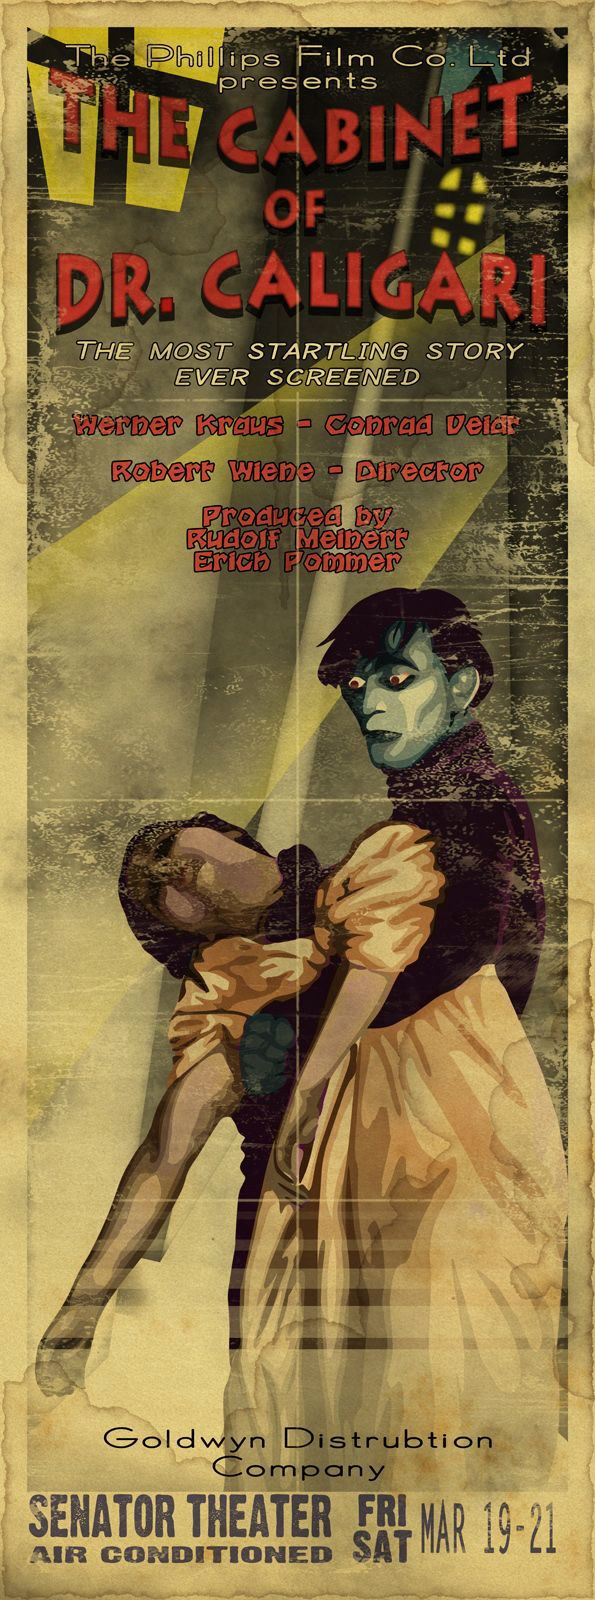 The Cabinet of Dr. Caligari (1920) - US Insert